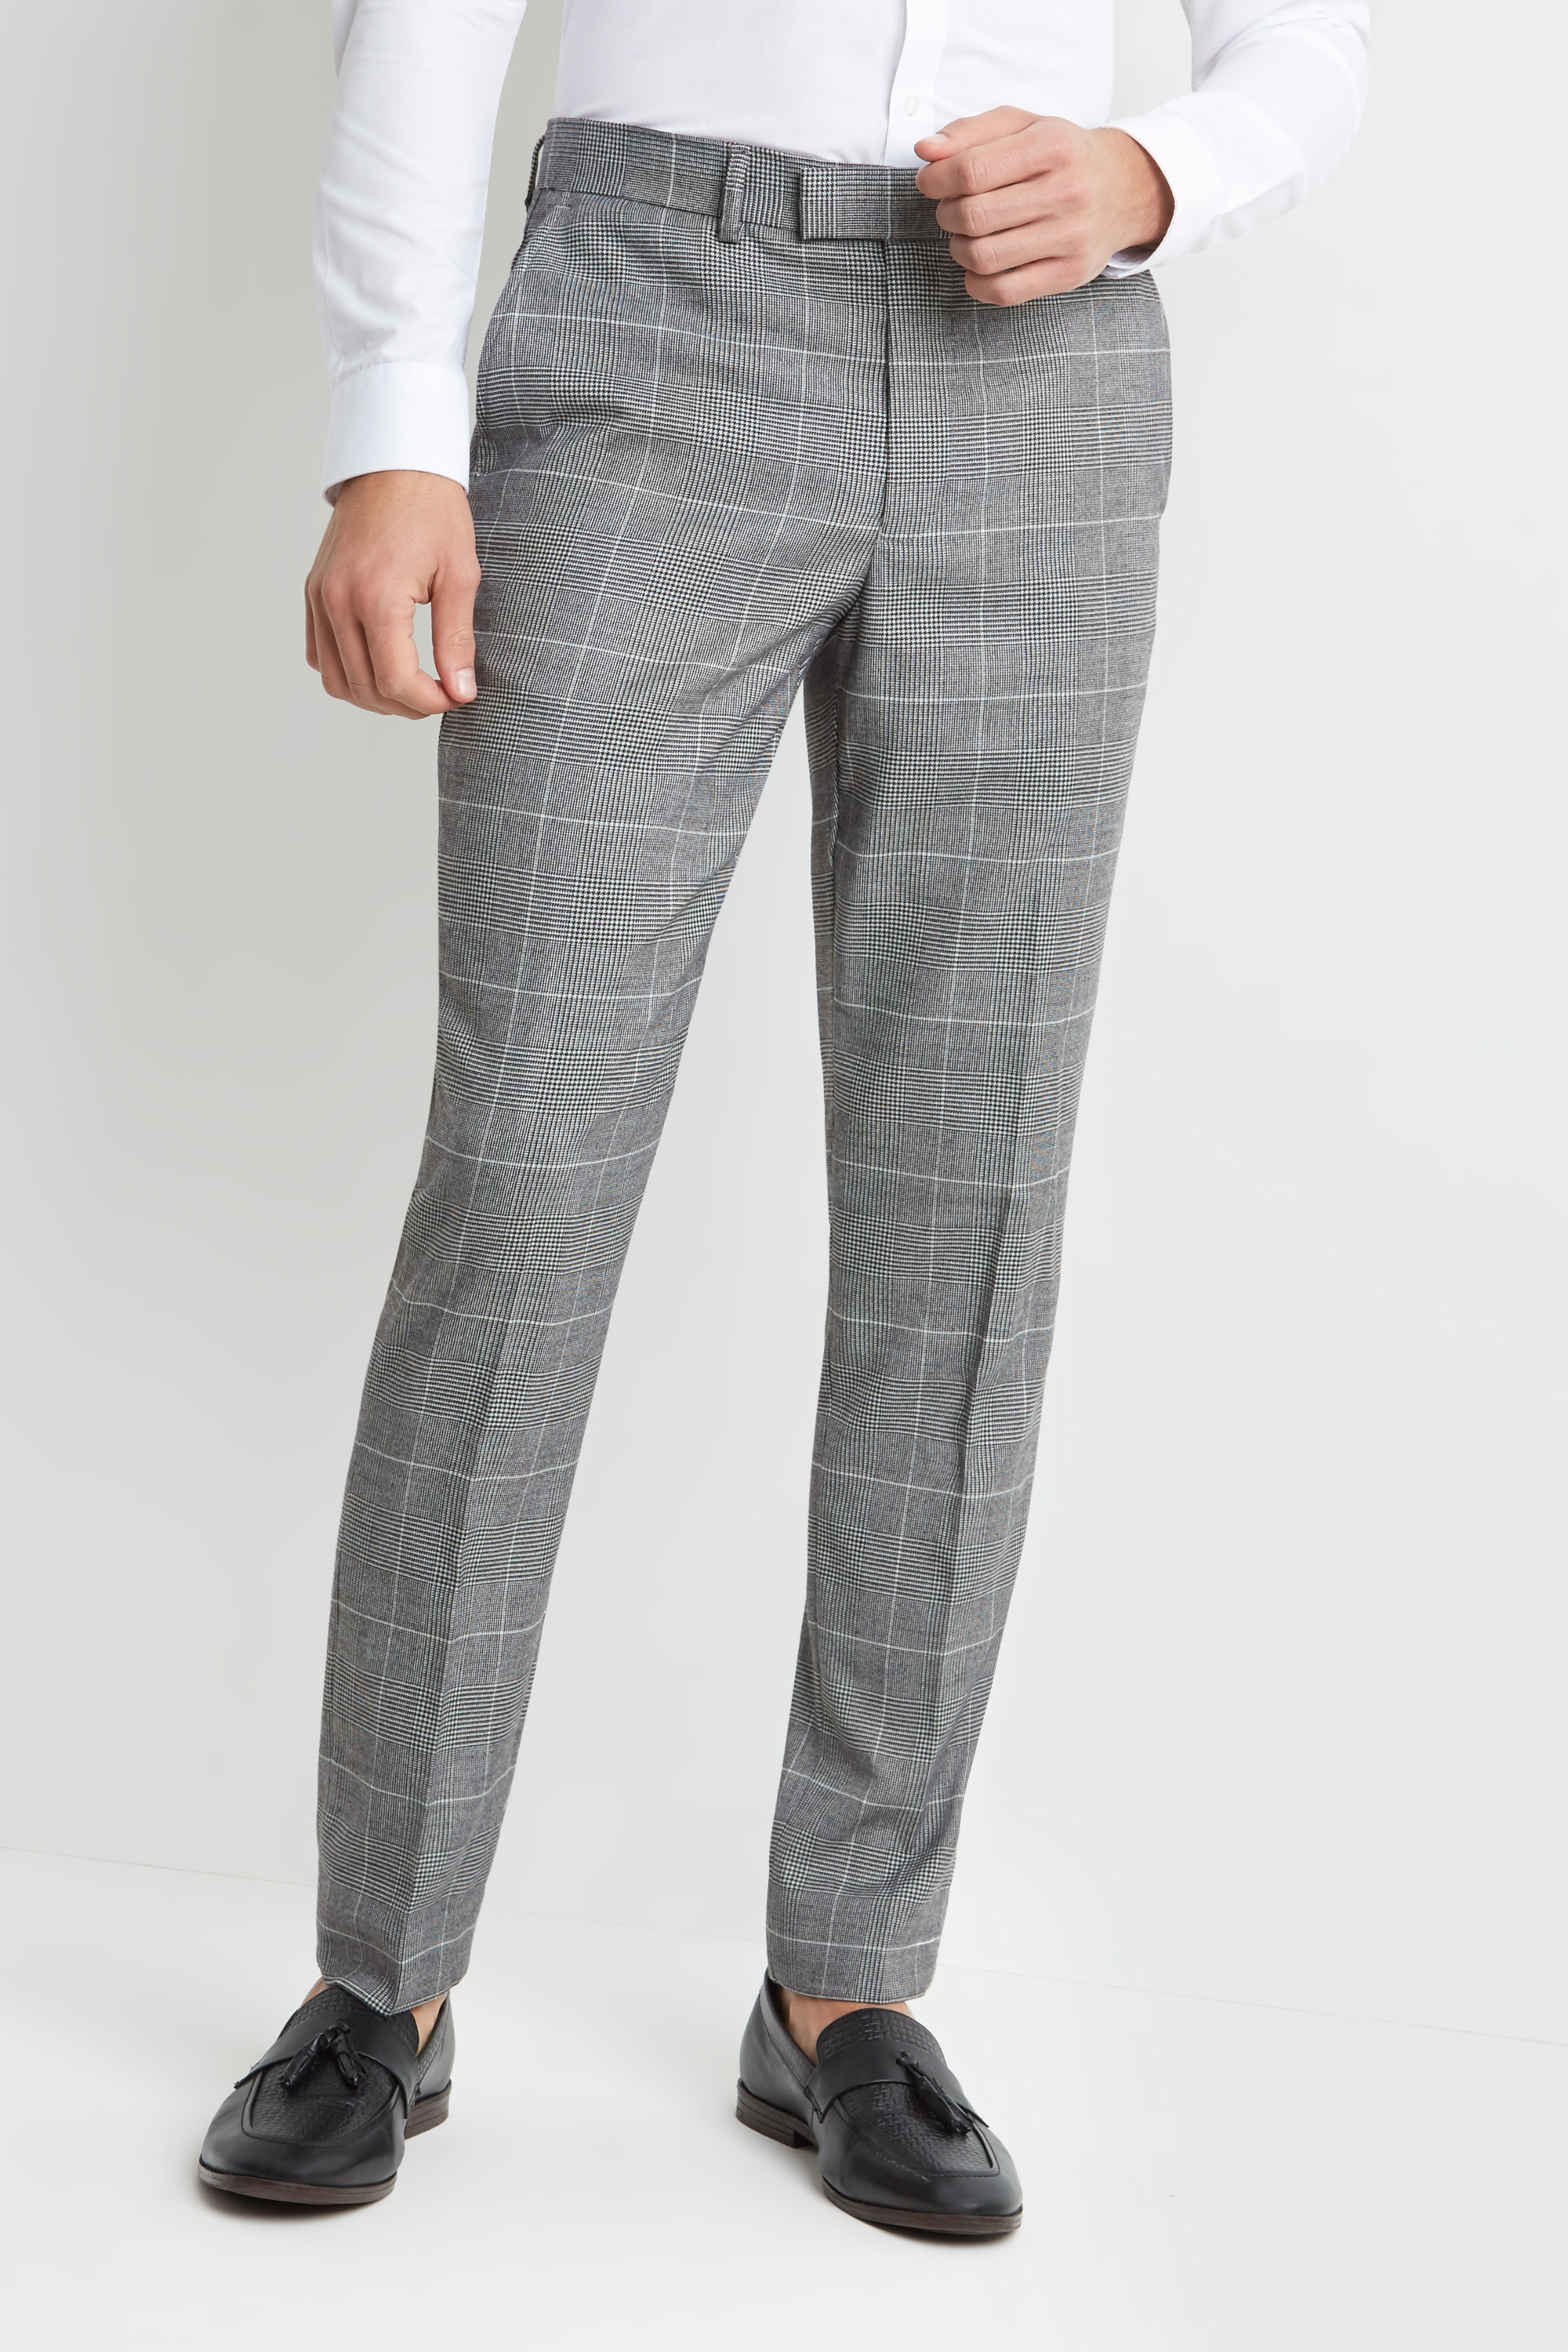 3258f51f65 Details about Moss London Skinny Fit Mens Trousers Black and White Check  Formal Pants